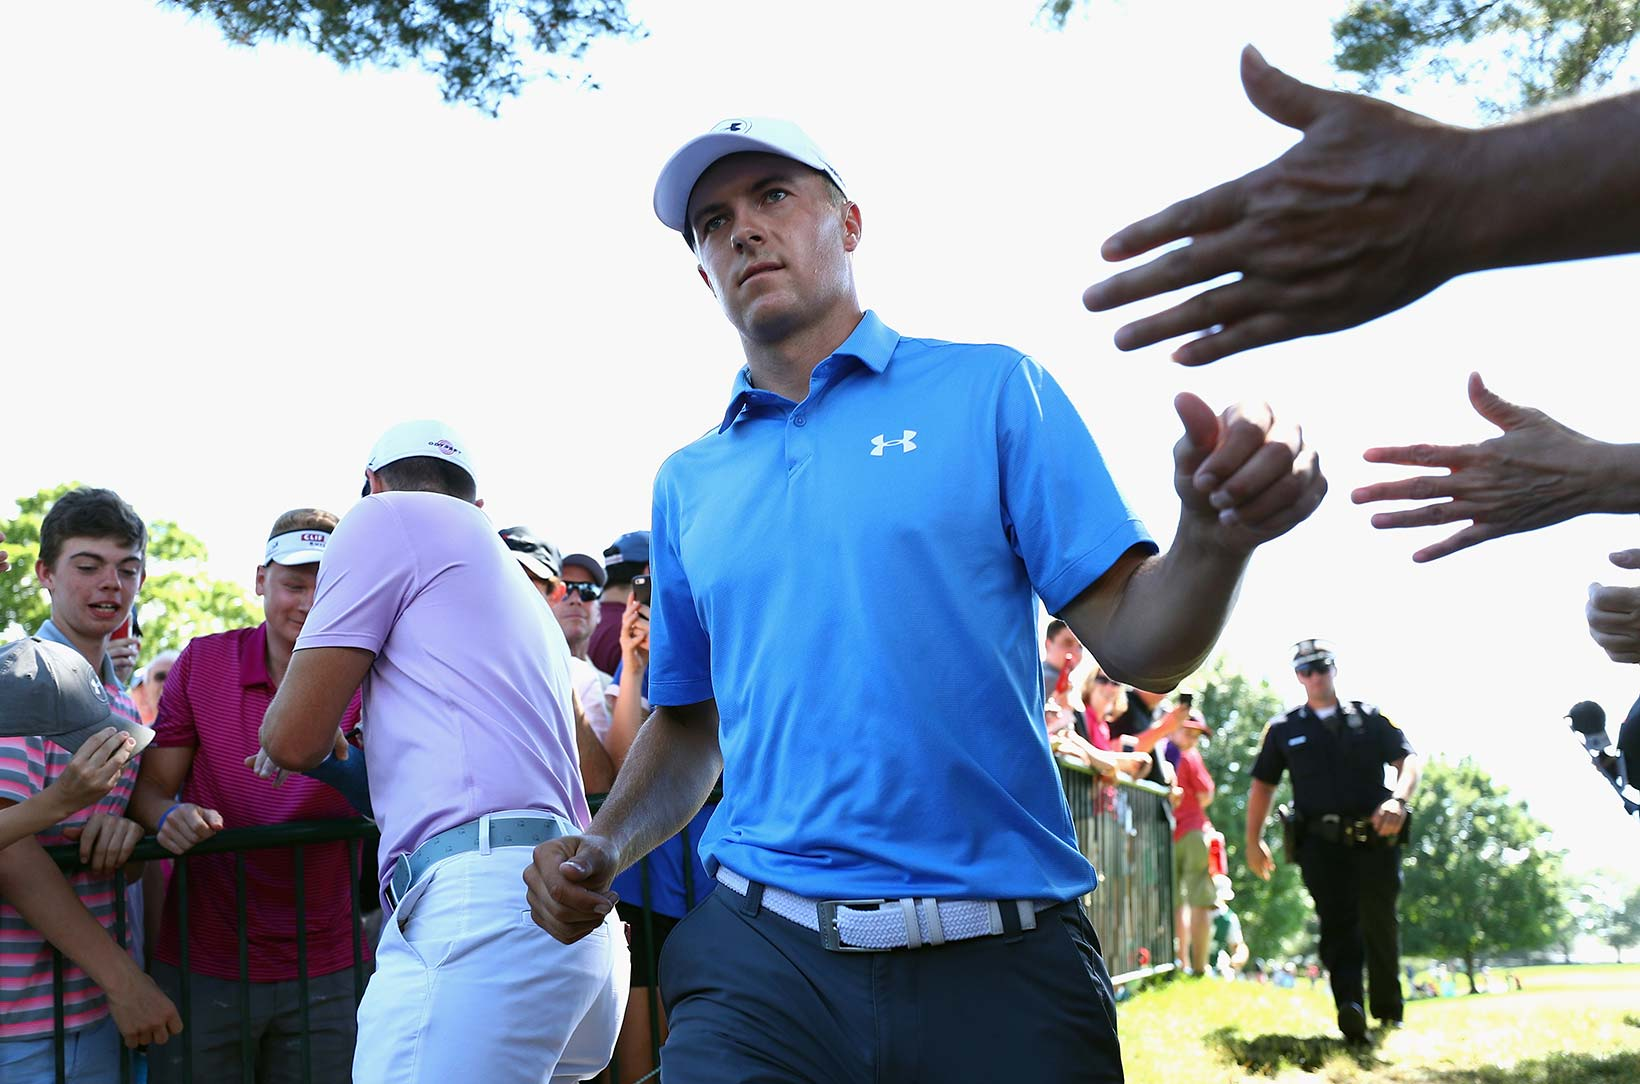 2017 Travelers Championship: Round 1 - Jordan Greets the Fans on the Turn